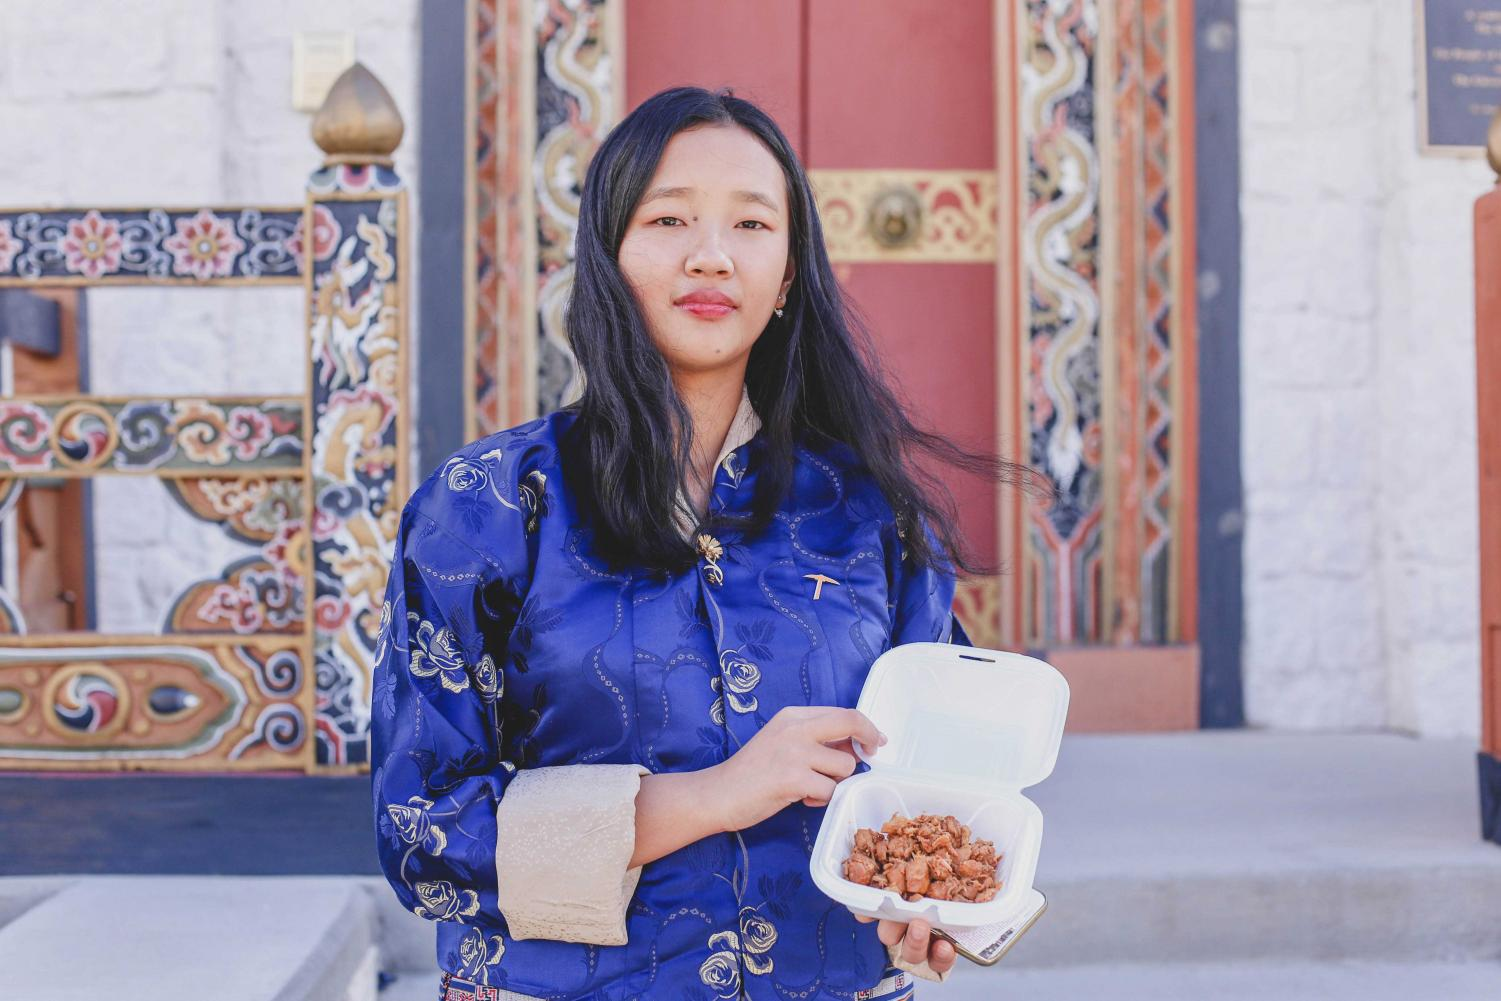 Freshman environmental science major Yeshey Seldon poses in front of the Bhutan Temple holding Jasha Maru (Spicy Chicken Curry) sold by the Bhutanese Student Association at the International Food Fair on Monday, Nov. 12.